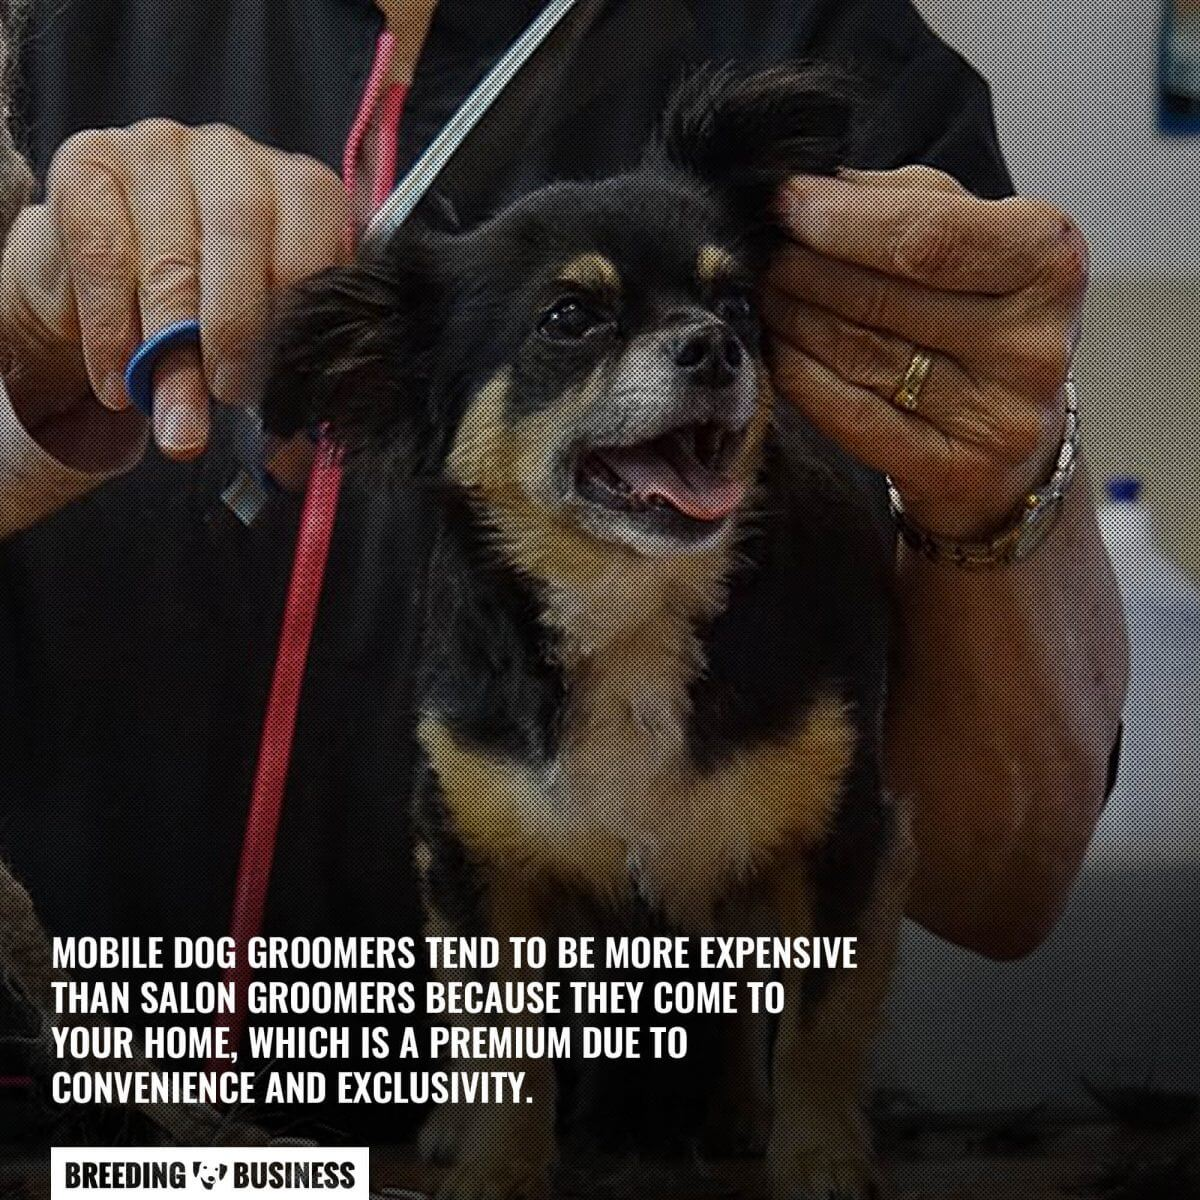 price of mobile dog groomers